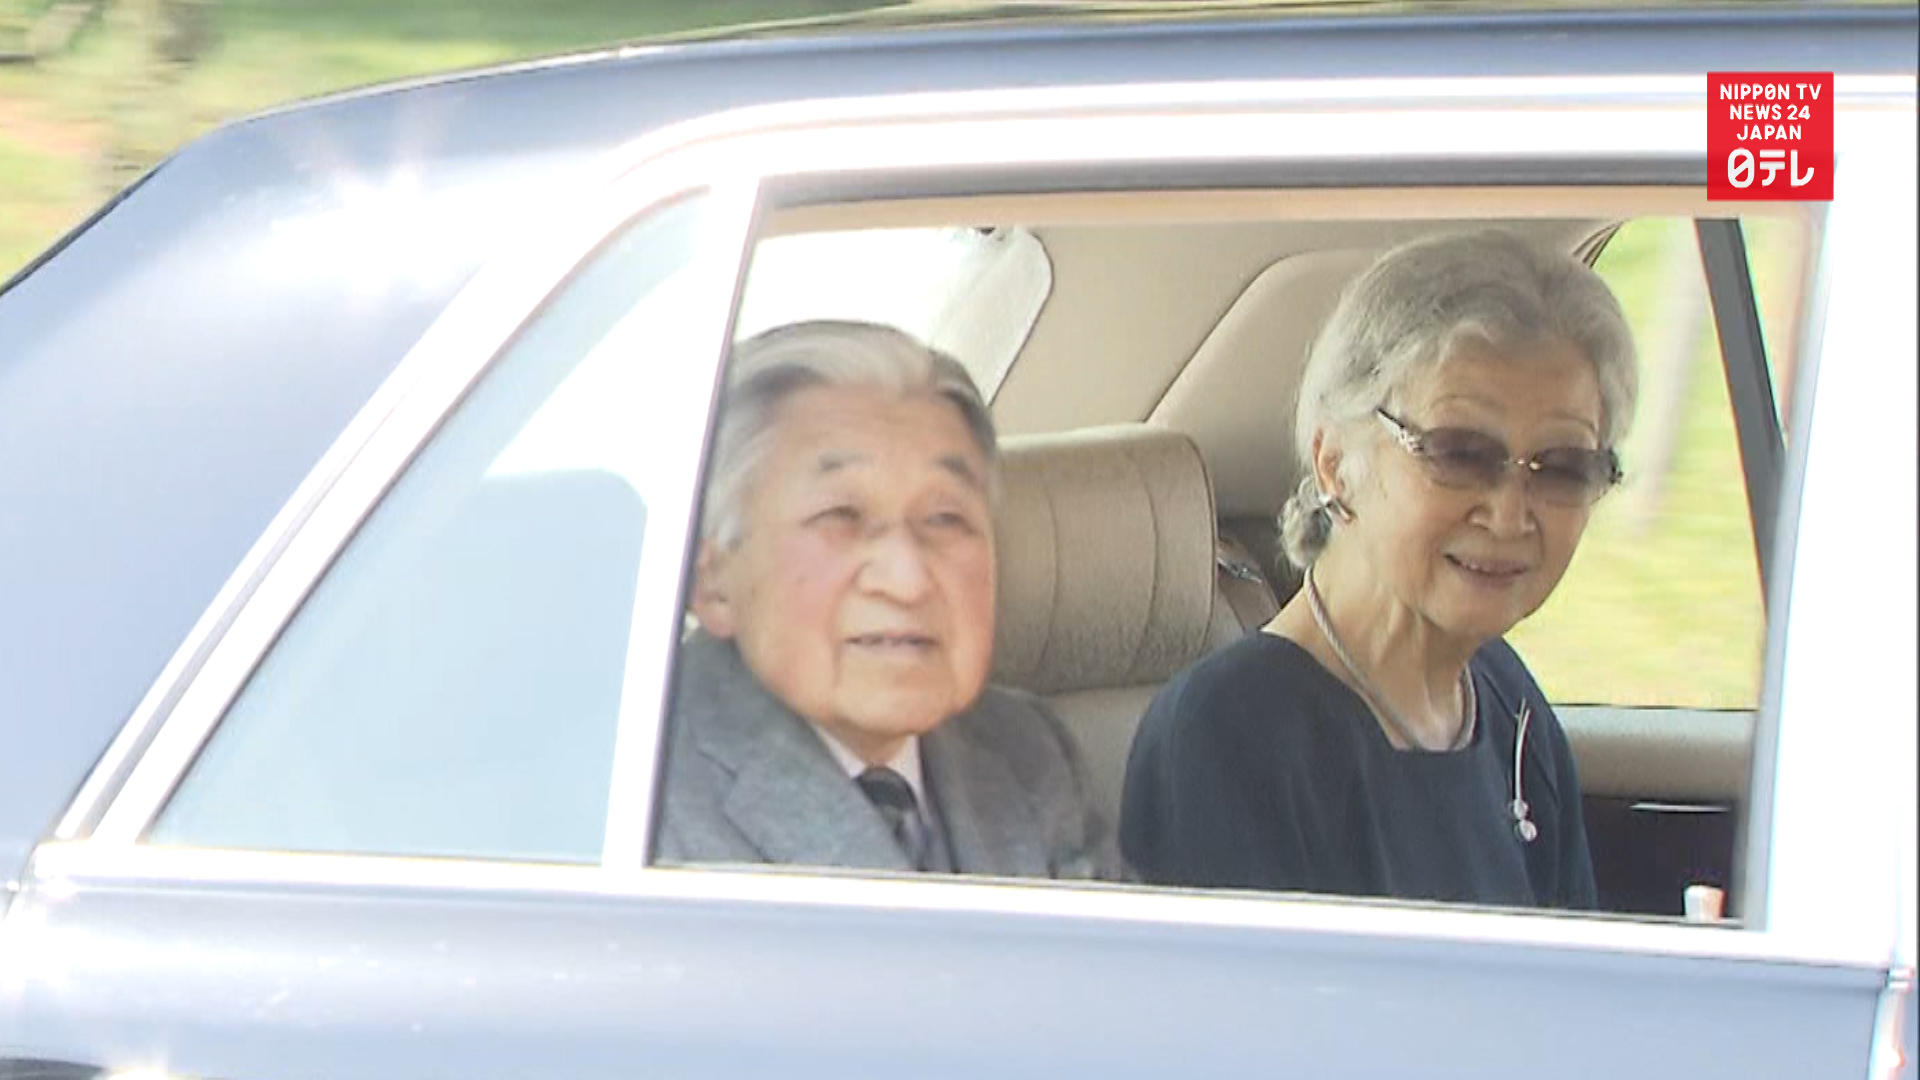 Emperor emeritus moves out of Imperial Palace